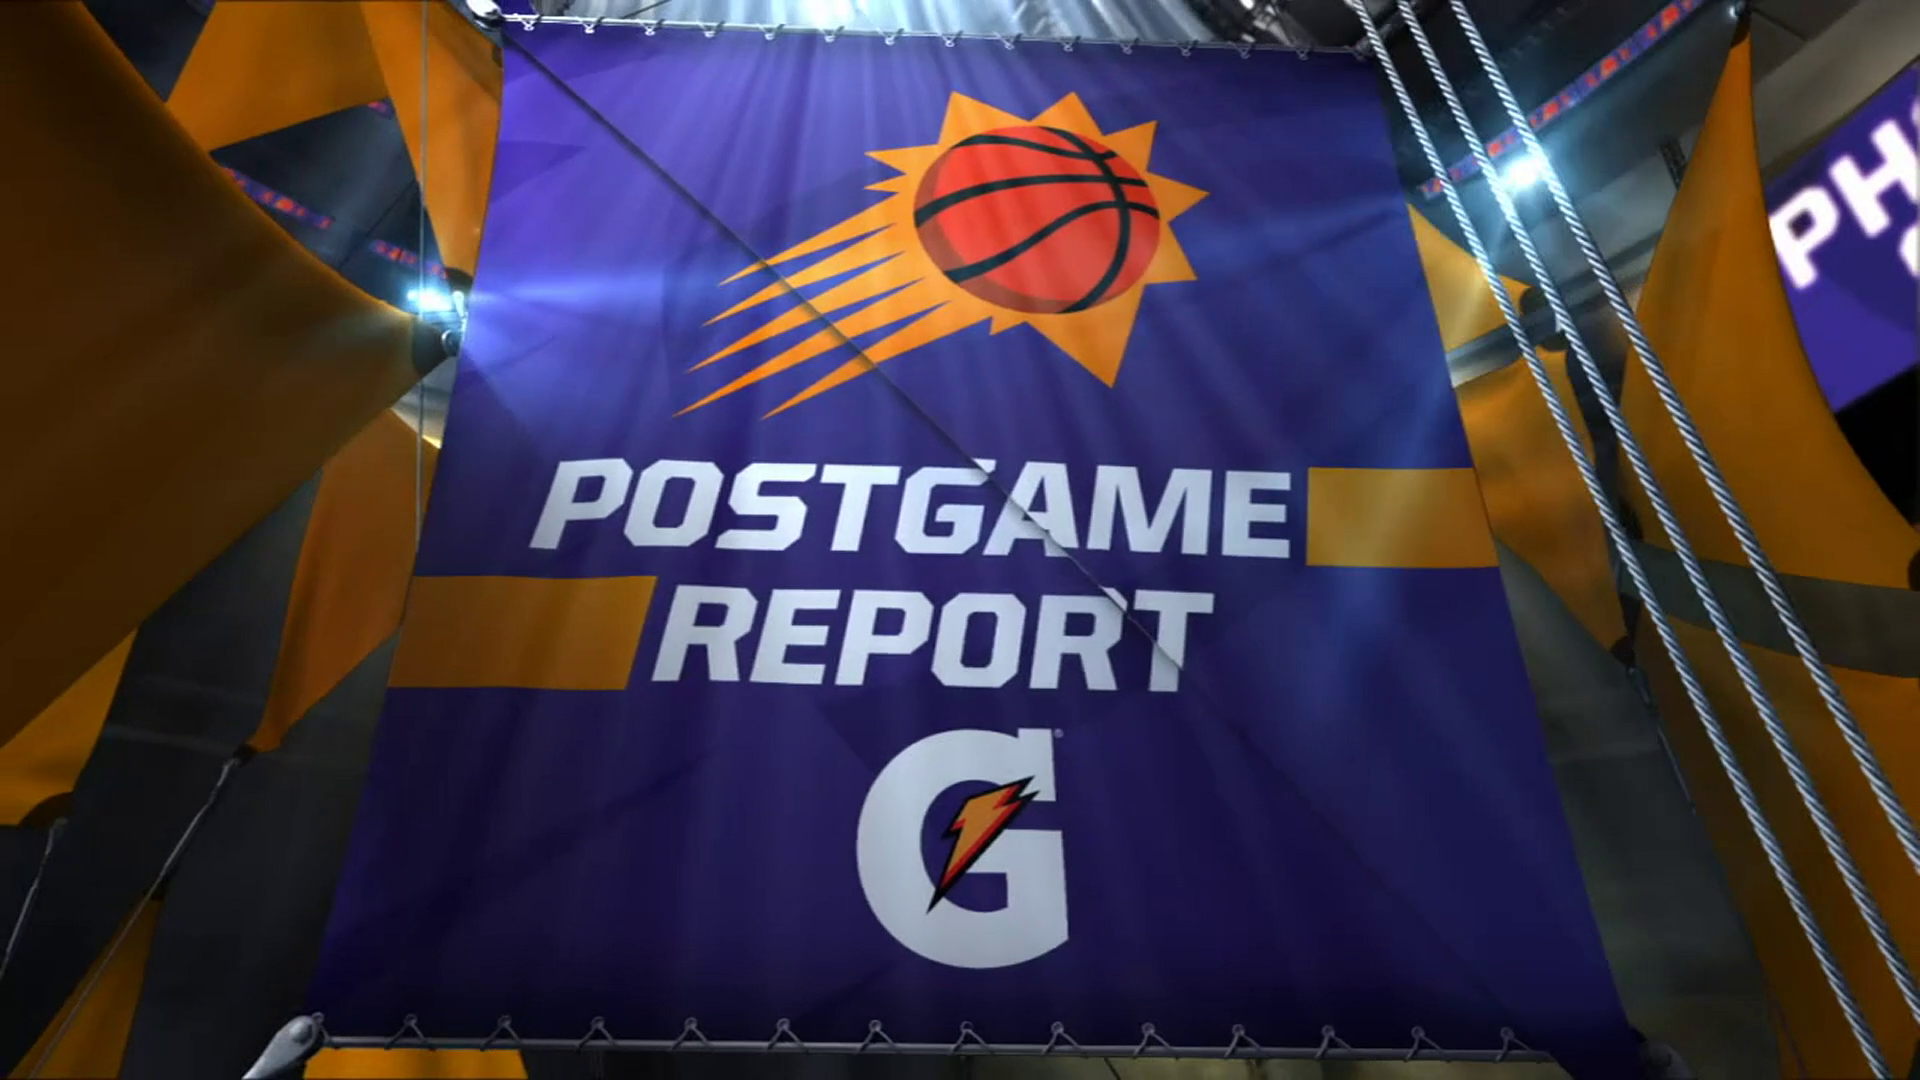 Gatorade Postgame Report: Suns vs. Warriors 2020-21